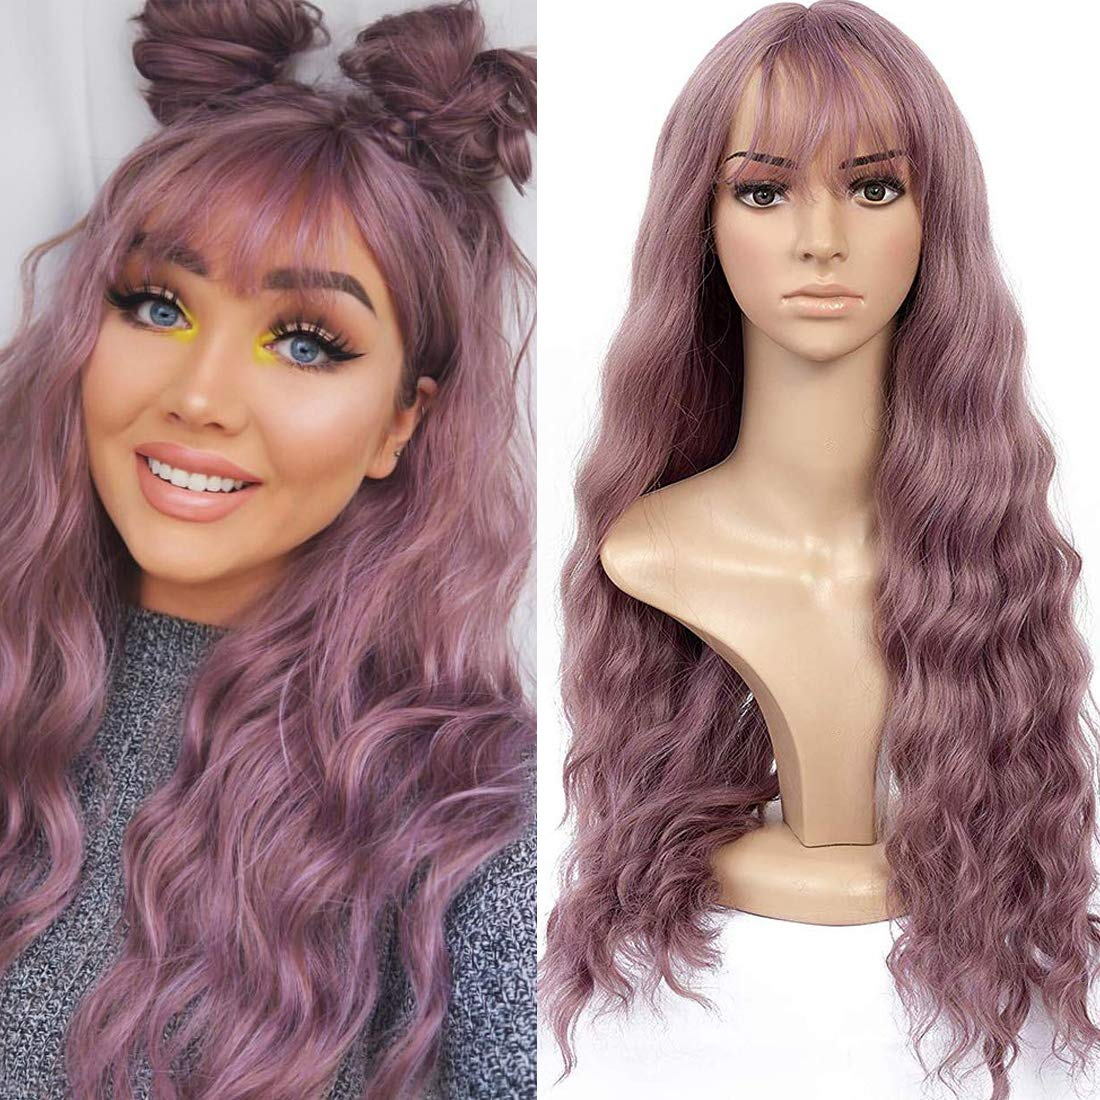 Long Wavy Wig With Air Bangs Silky Full Heat Resistant Synthetic Wig for Women (Pink)